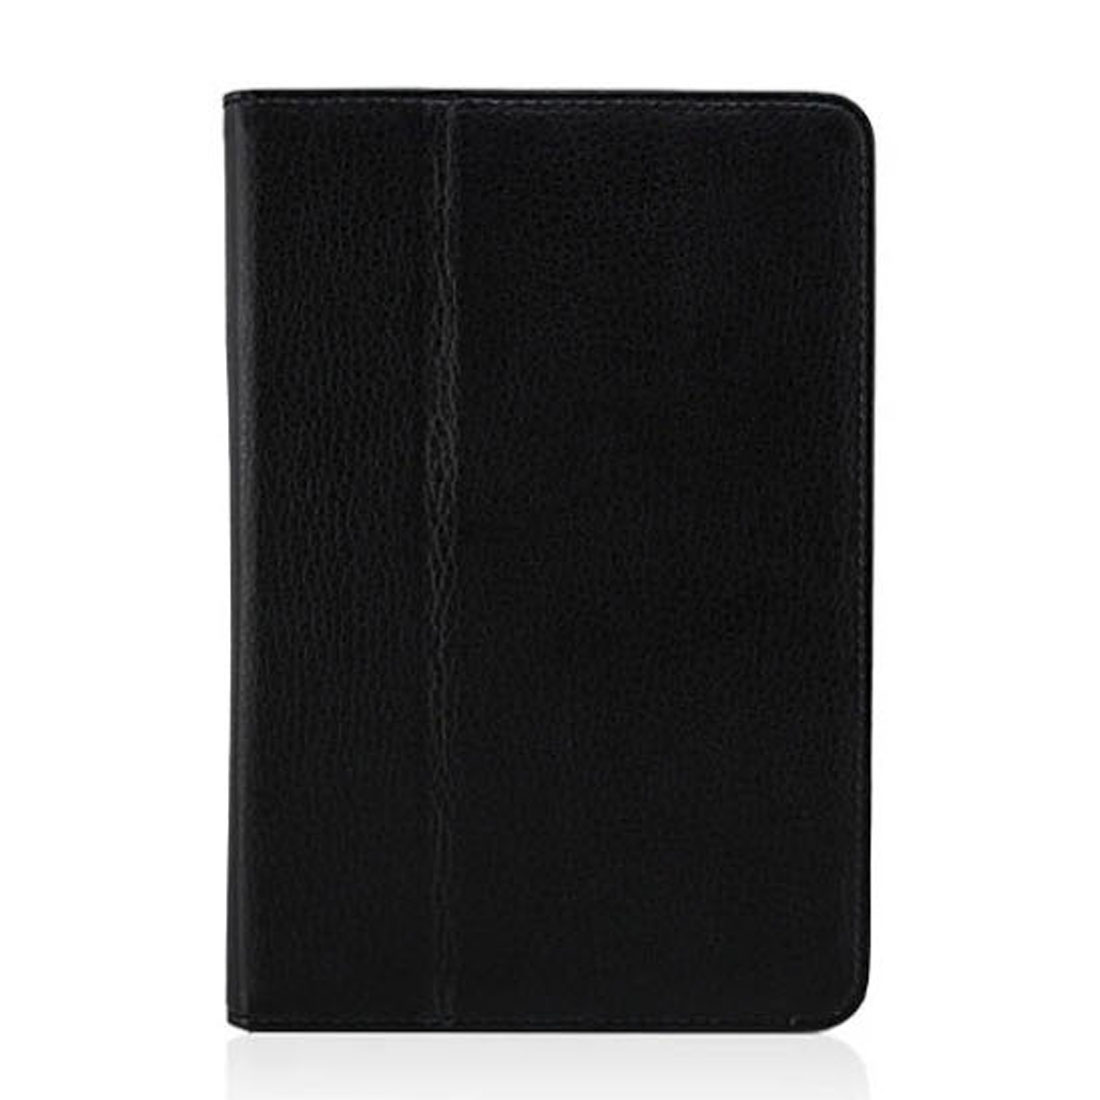 Tablet Case Colorful Flip Smart Cover PU Leather Stand Flip Screen Protector Cover for Apple iPad Air 2